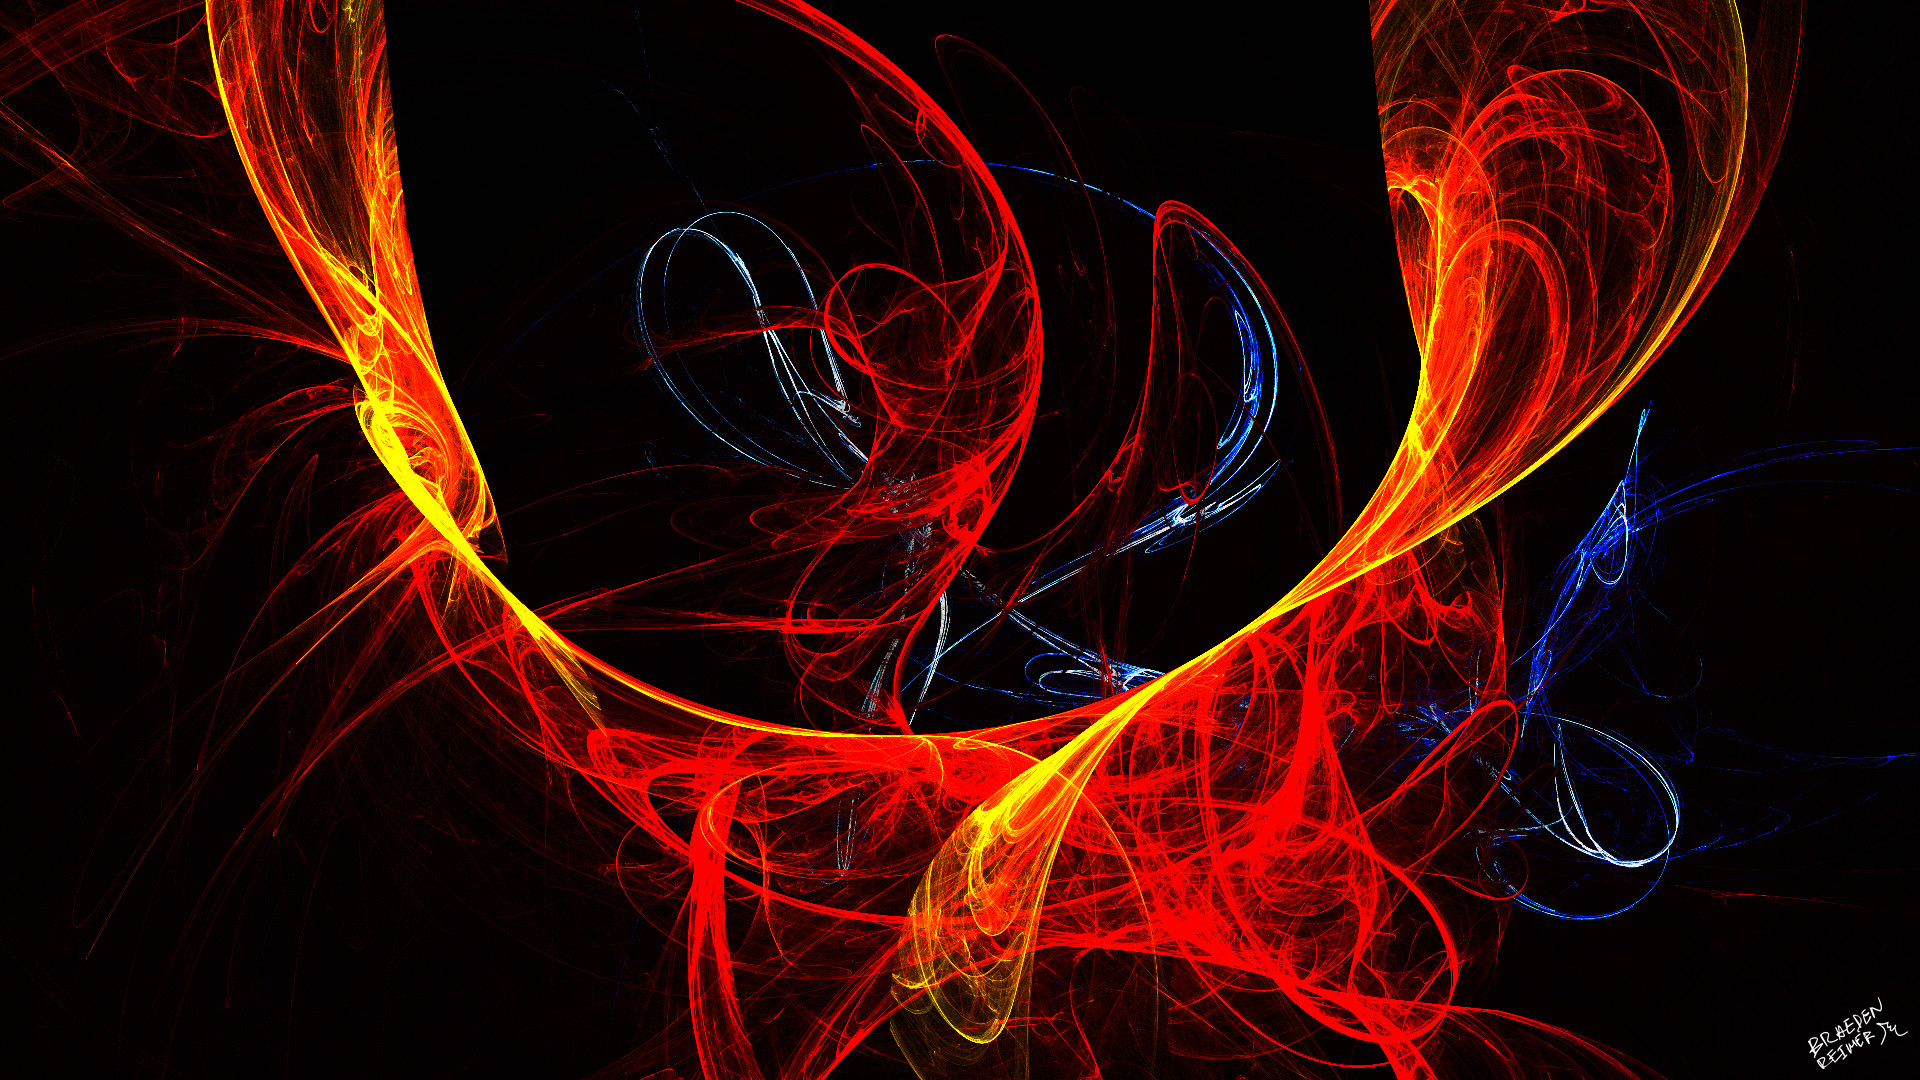 Fire Sweep By Neon Photo